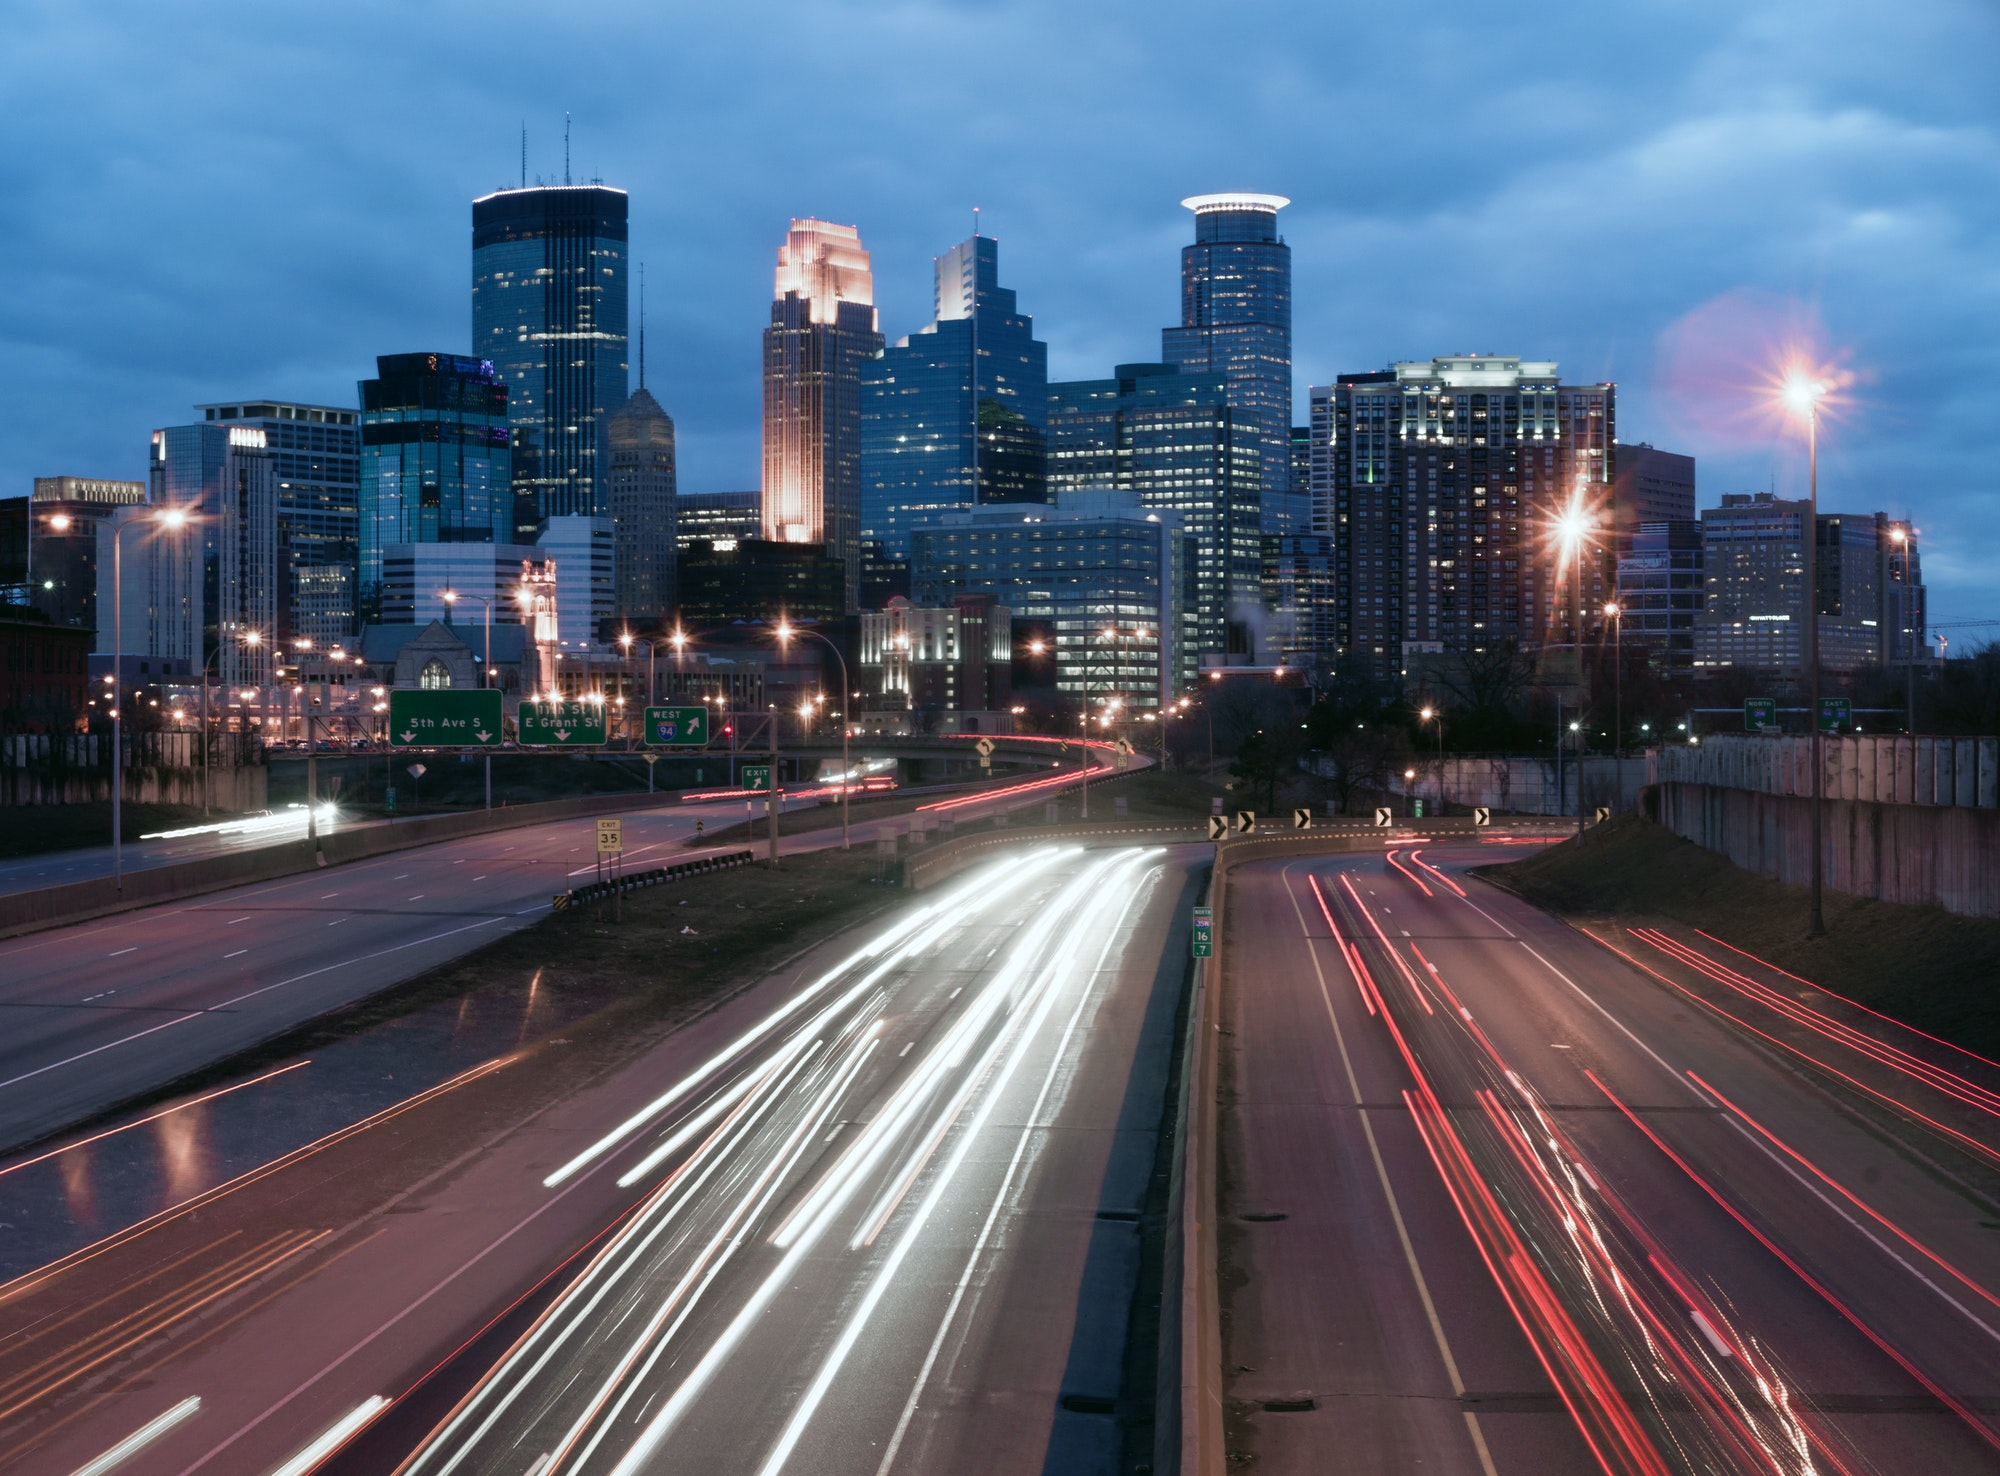 Highway Carries Cars and Trucks into and out of Minneapolis